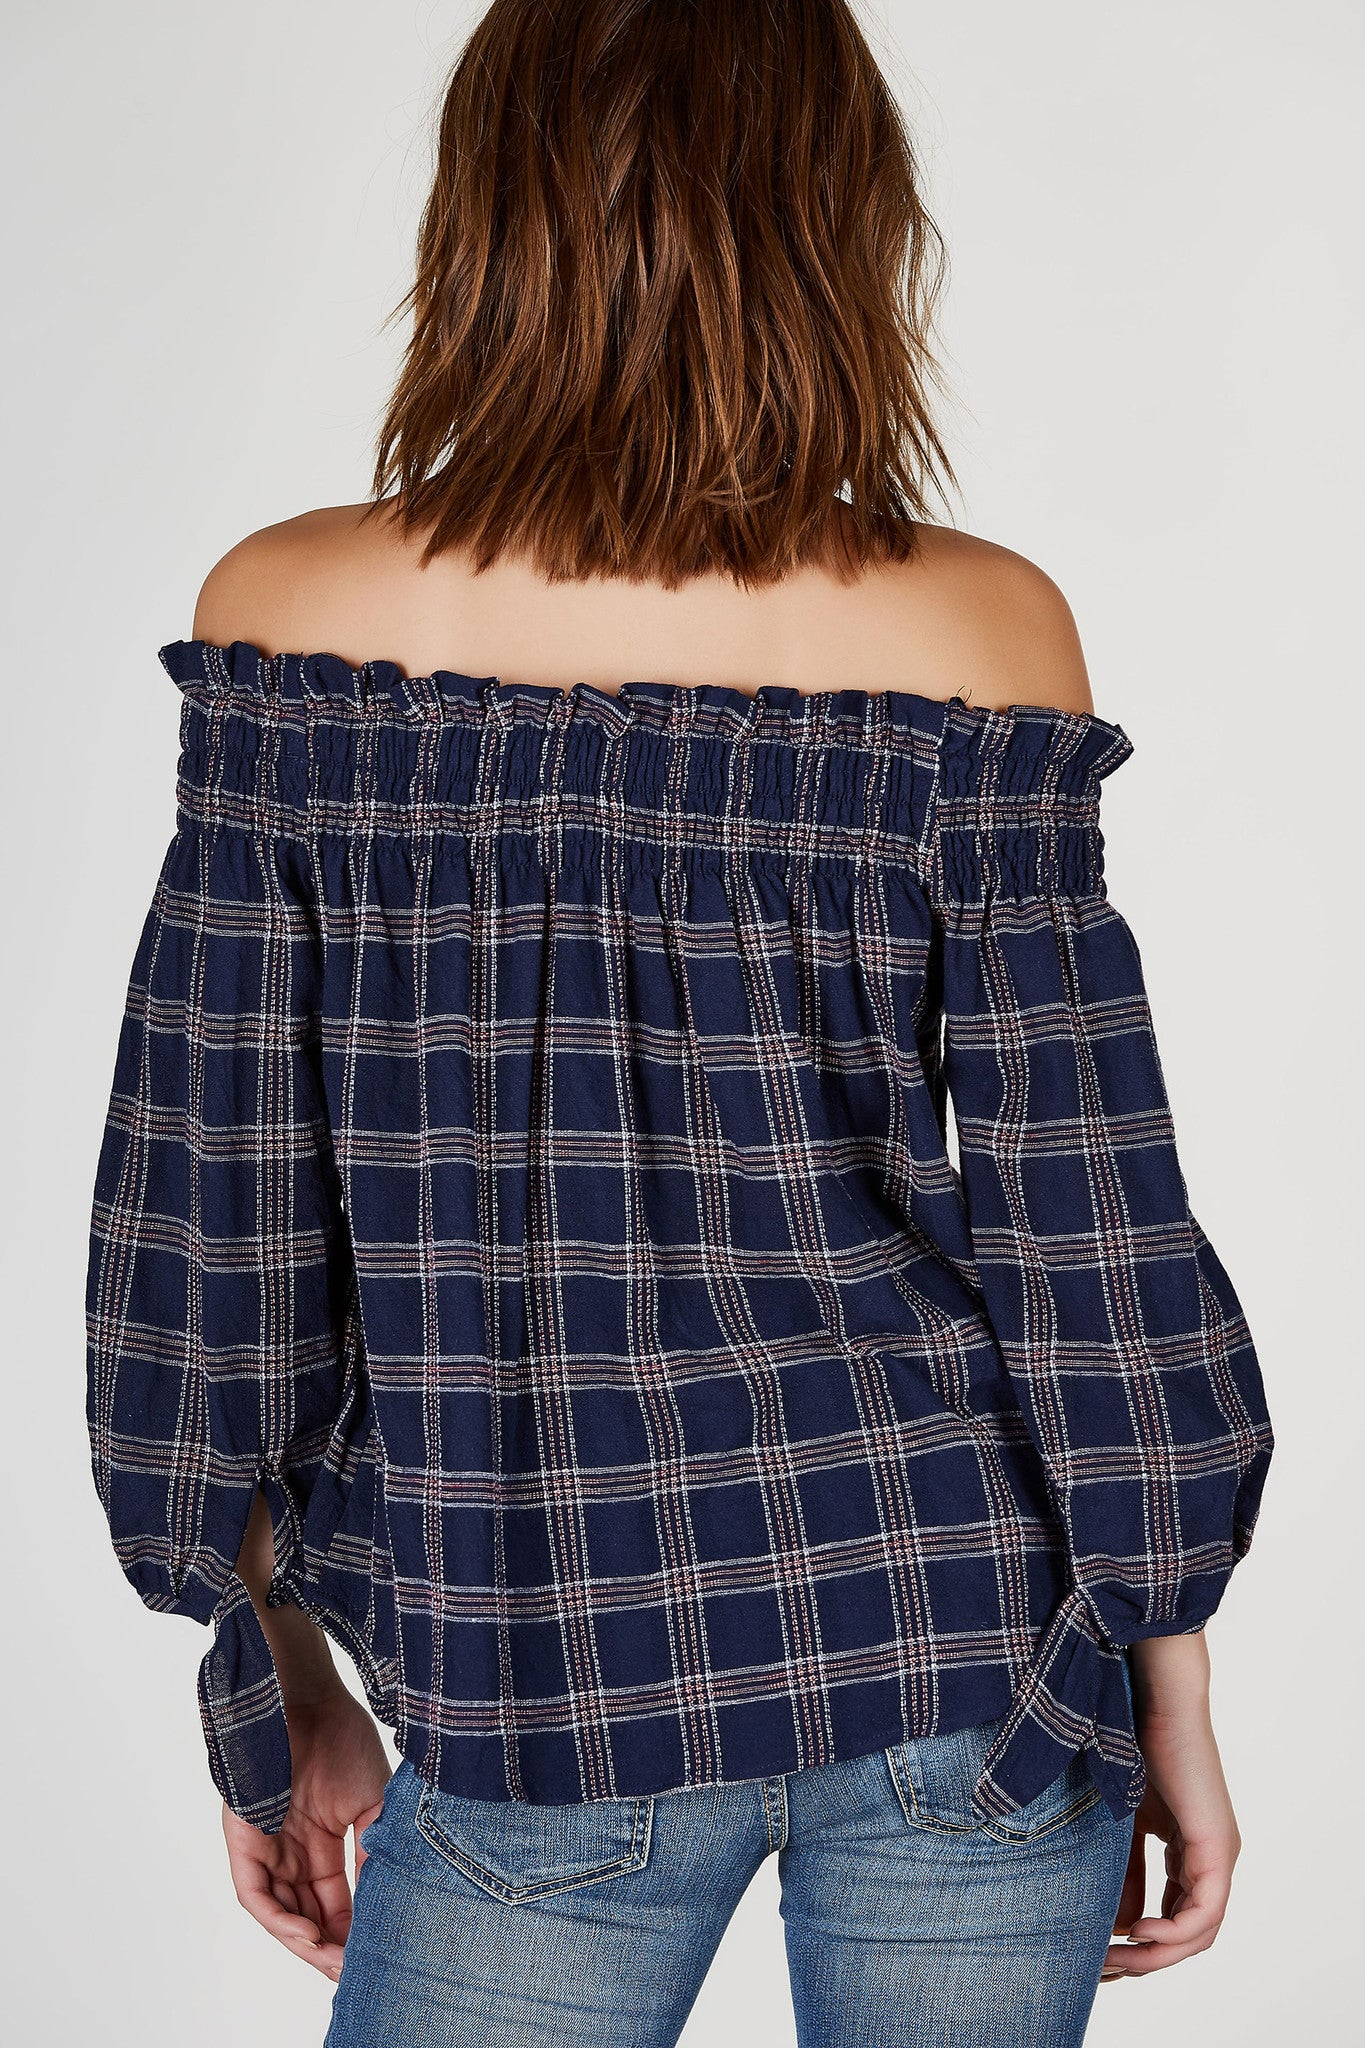 An easy way to look casual but stylish all at the same time! This flirty off shoulder top features plaid patterns throughout with adorable tie up sleeves. Relaxed fit with soft rounded hem with a slightly longer back. Pair with white shorts and sandals!